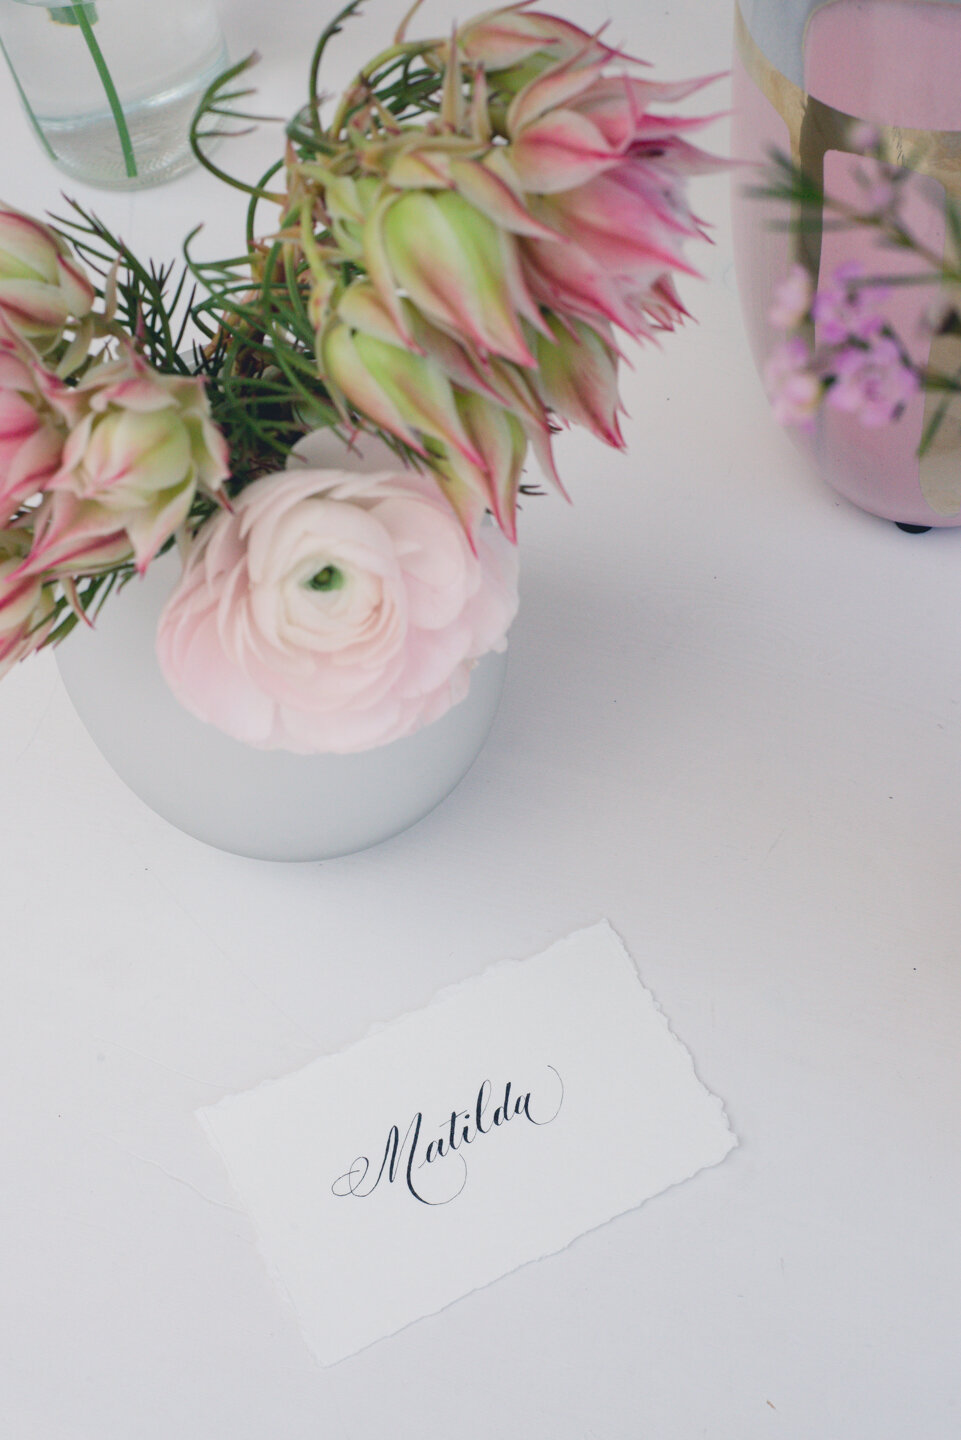 Simple white place card with Copperplate calligraphy (Patricia style).